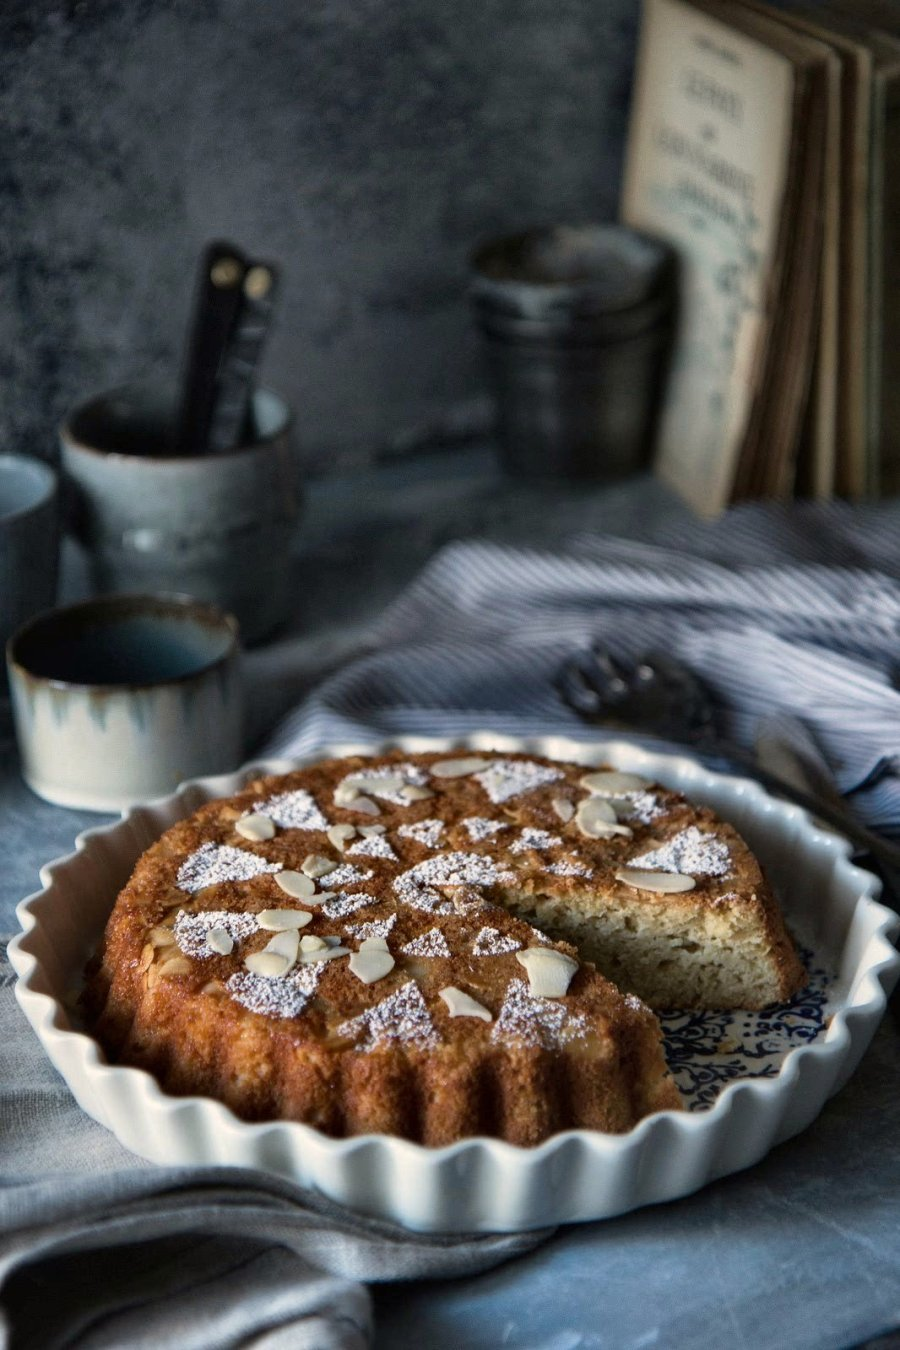 Apple and Almond cake misure medie